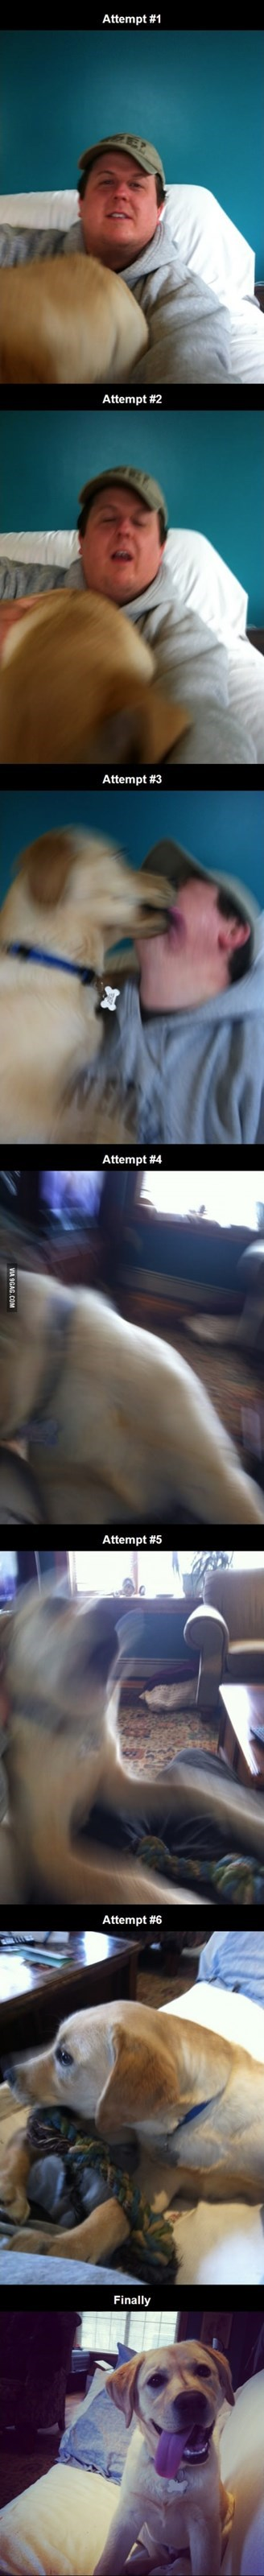 dogs selfie FAIL funny - 8149287680